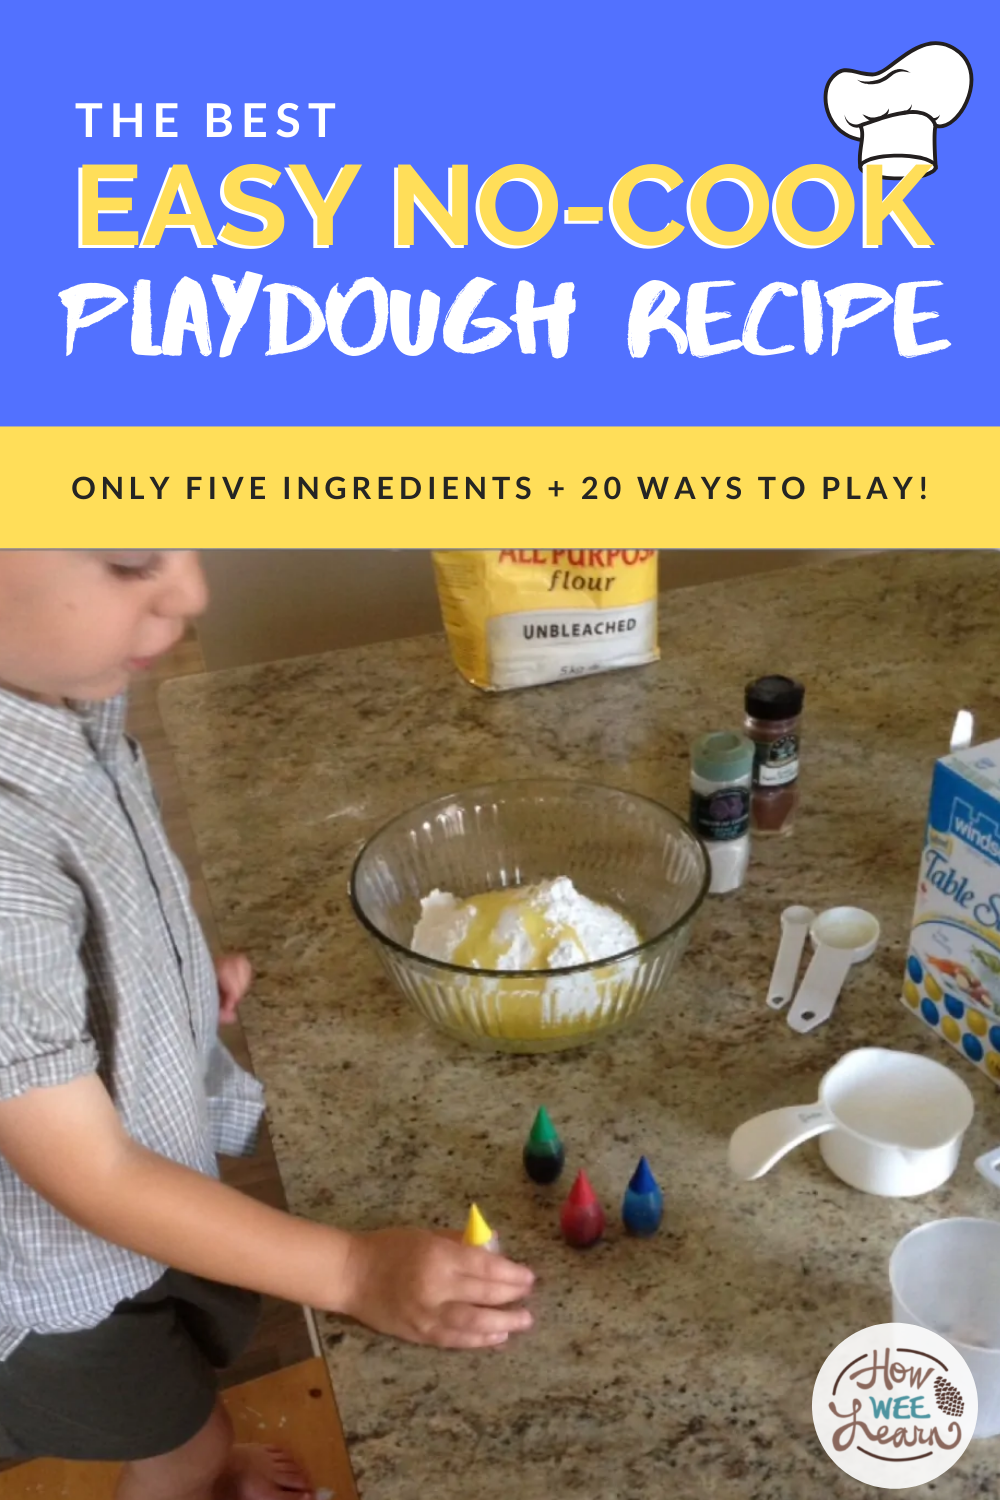 This is the BEST PLAYDOUGH RECIPE there is! Cooked